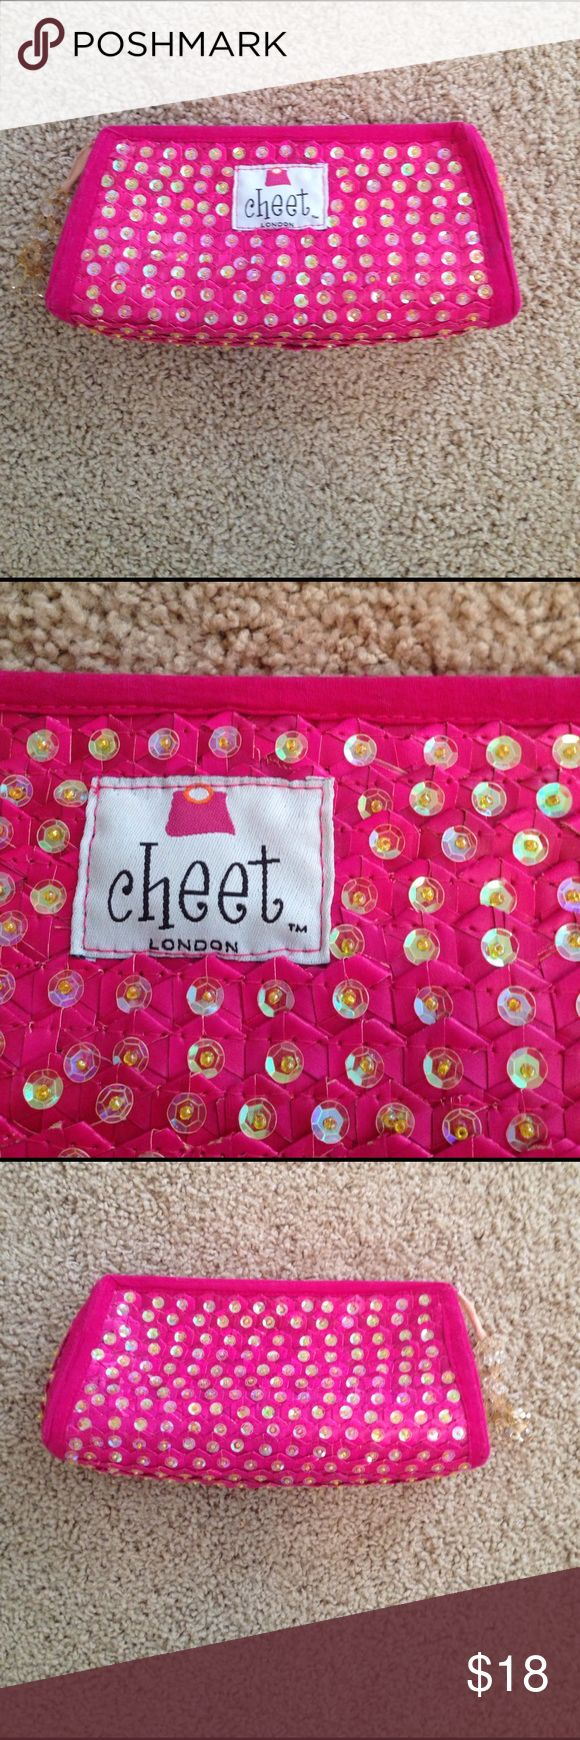 Cheet London clutch Cheet London clutch Cheat London Bags Clutches & Wristlets